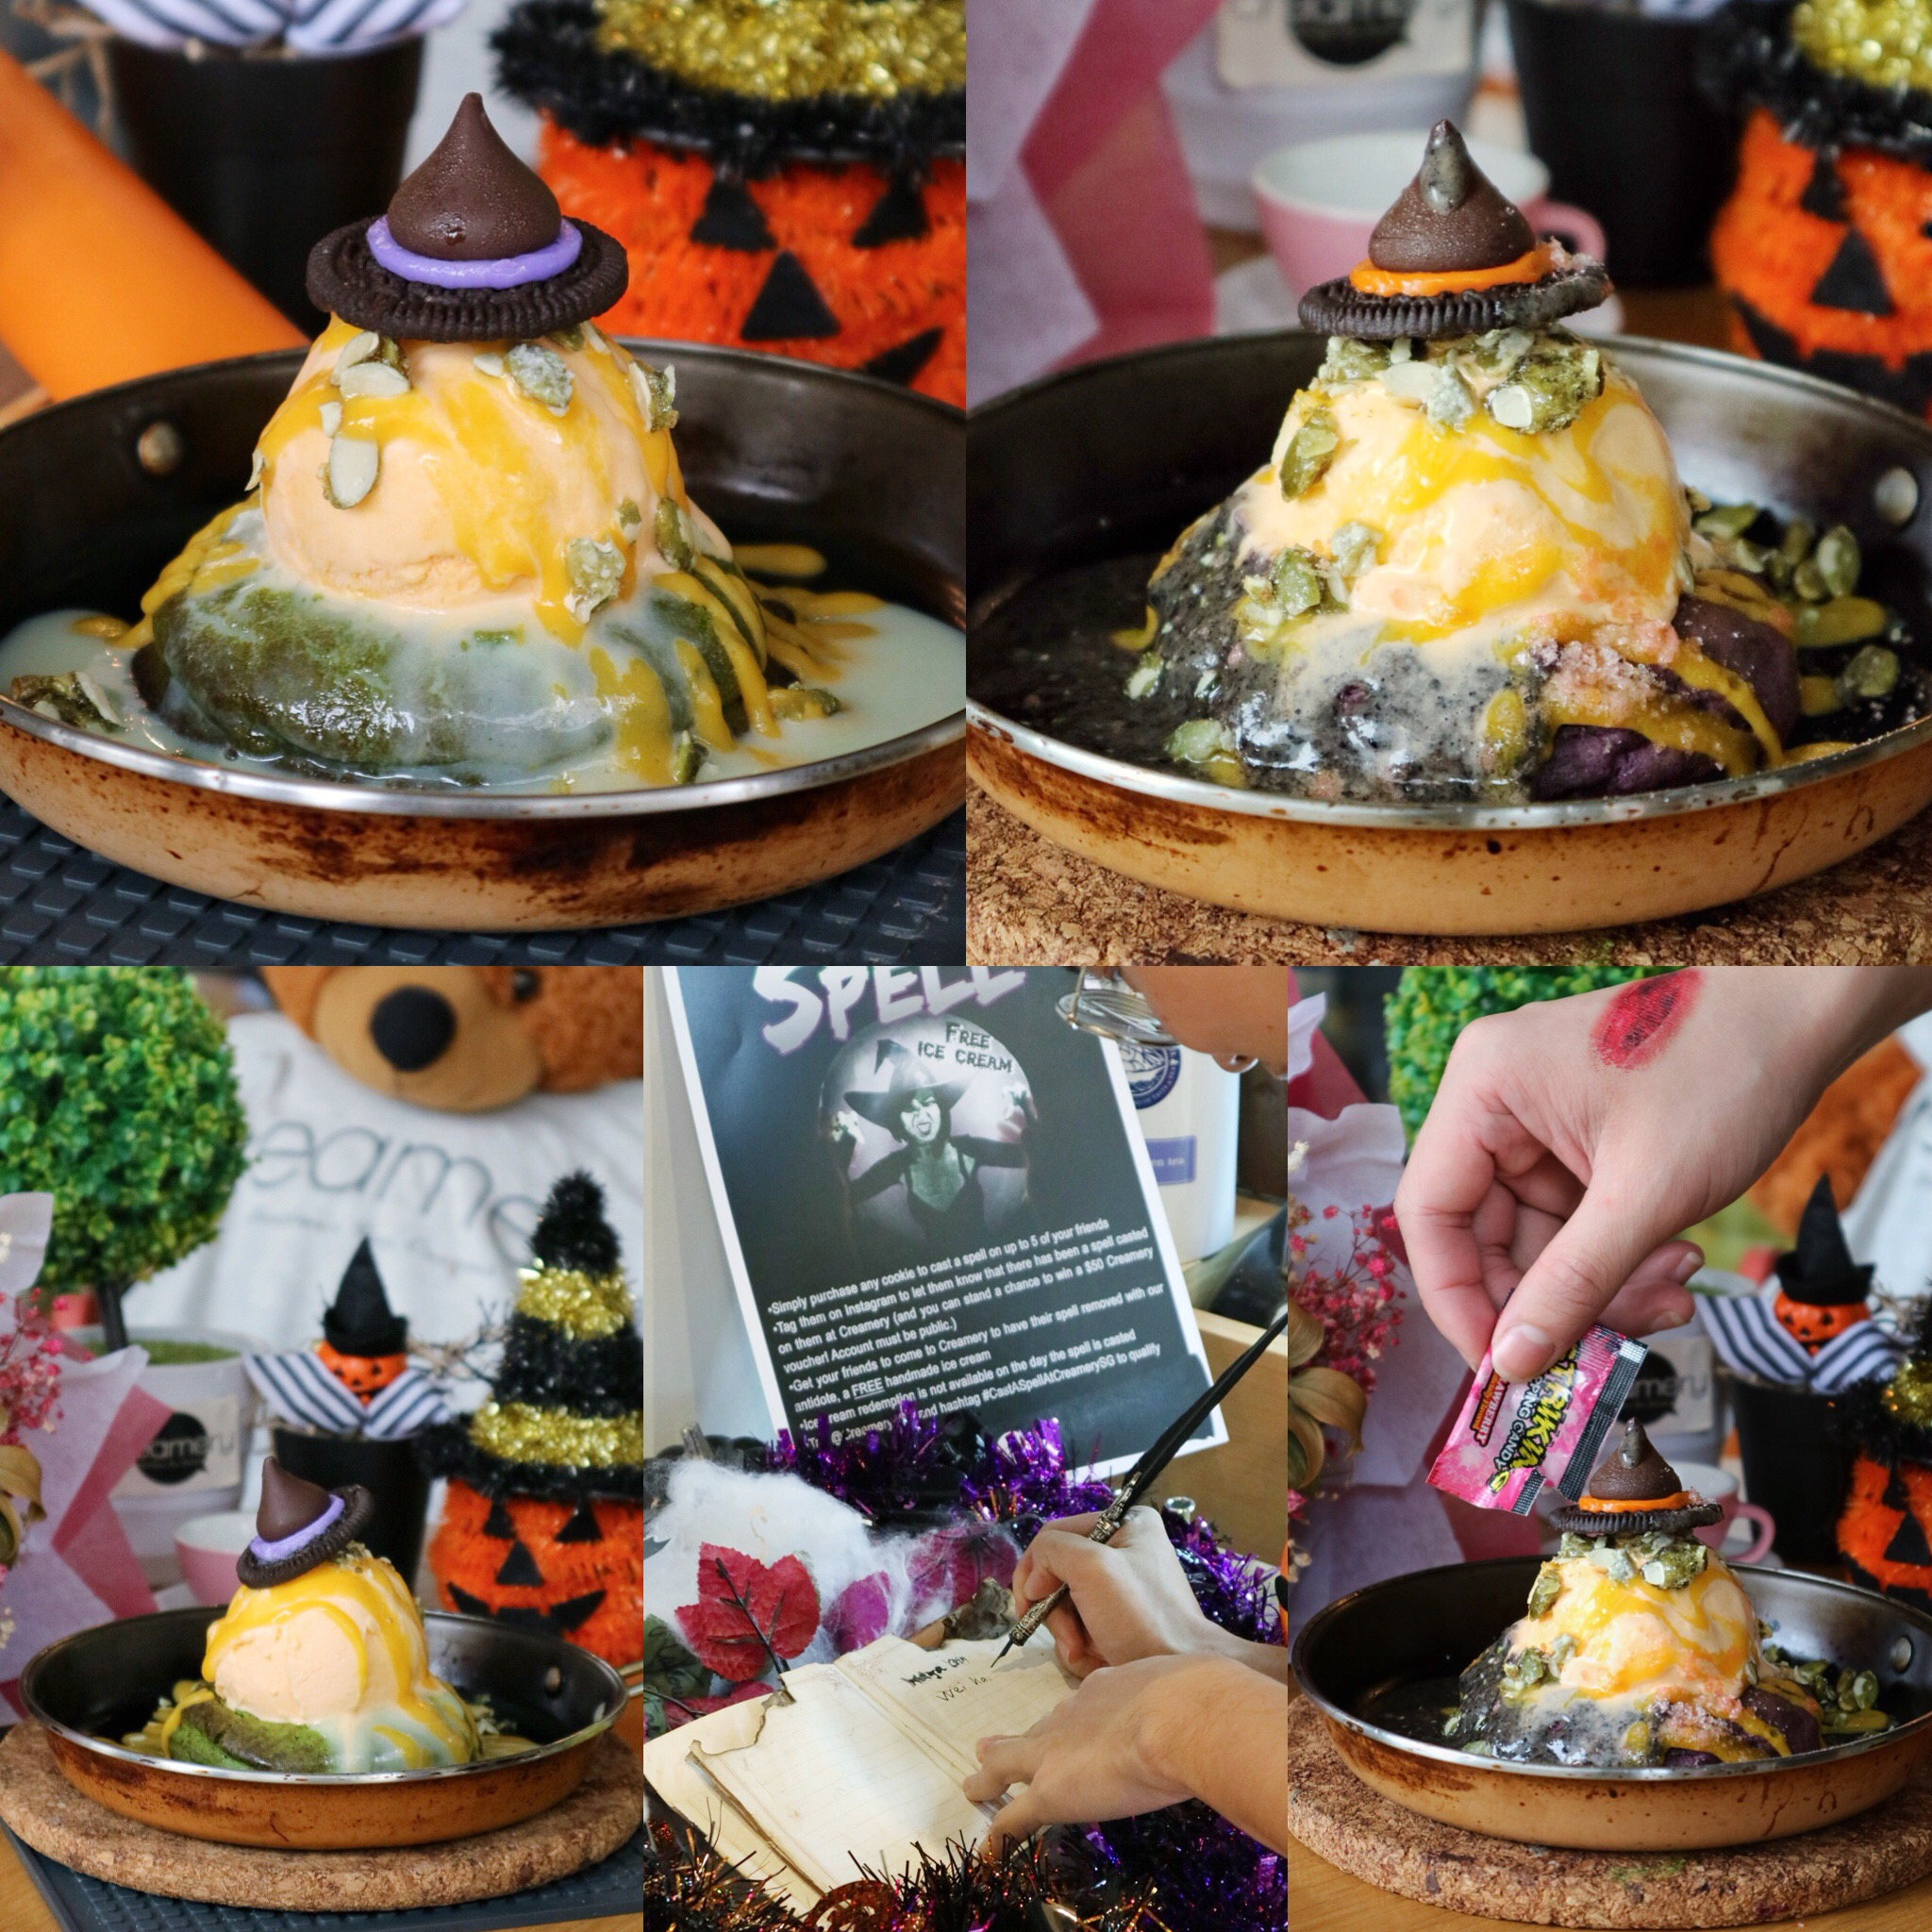 Creamery Boutique Ice Creams: Halloween Special Lava Cookies & Get A FREE Scoop of Ice Cream for Your Friends when you Cast a Spell!